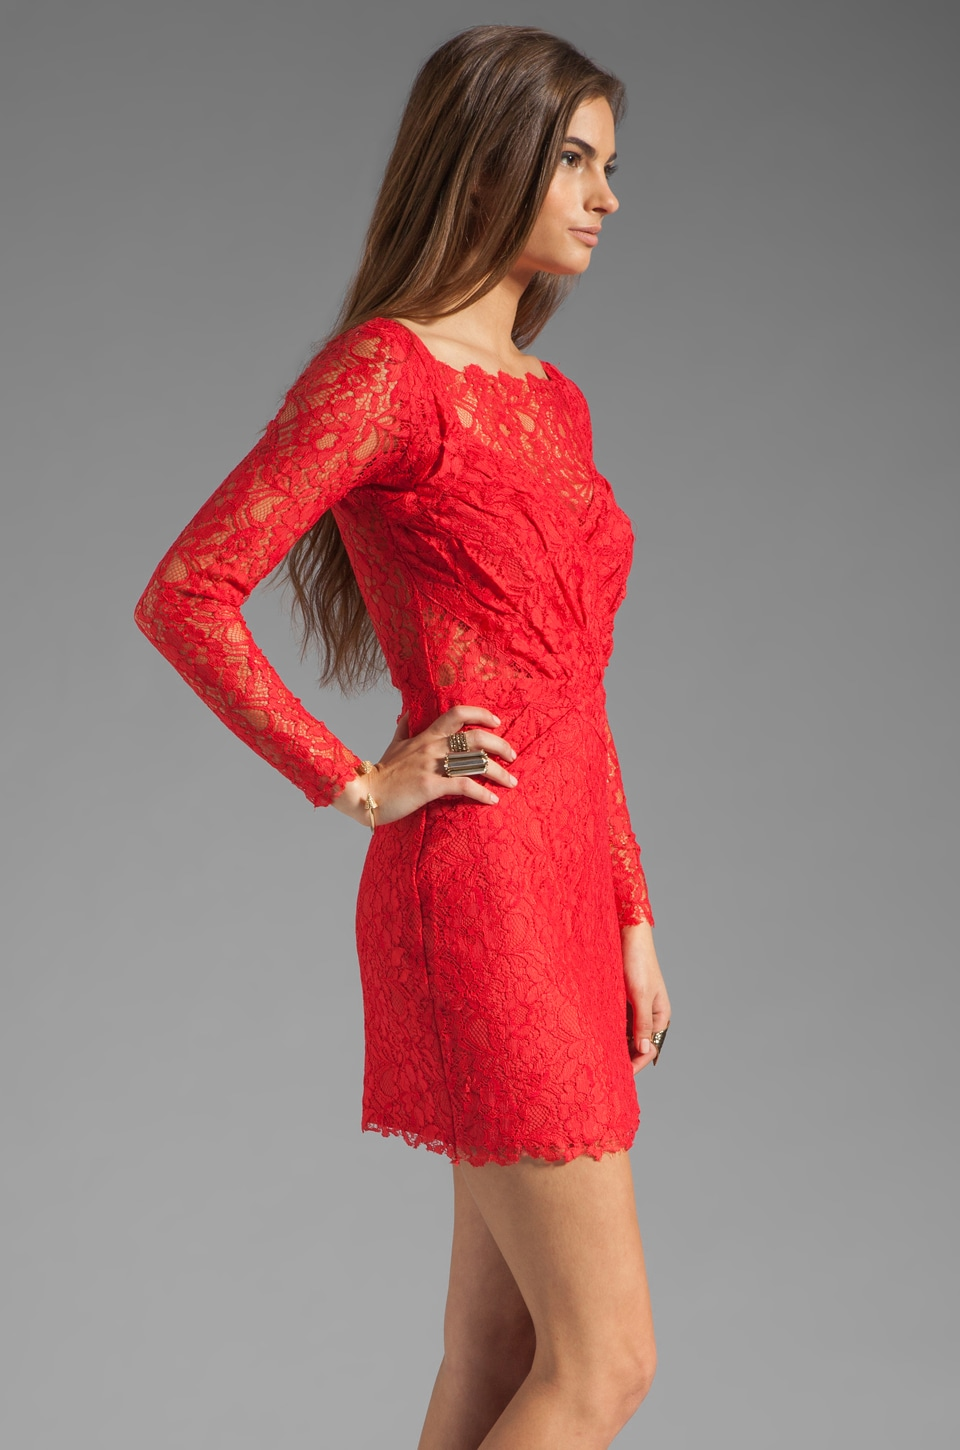 STYLESTALKER Love Me Do Rouched Dress in Coral Red